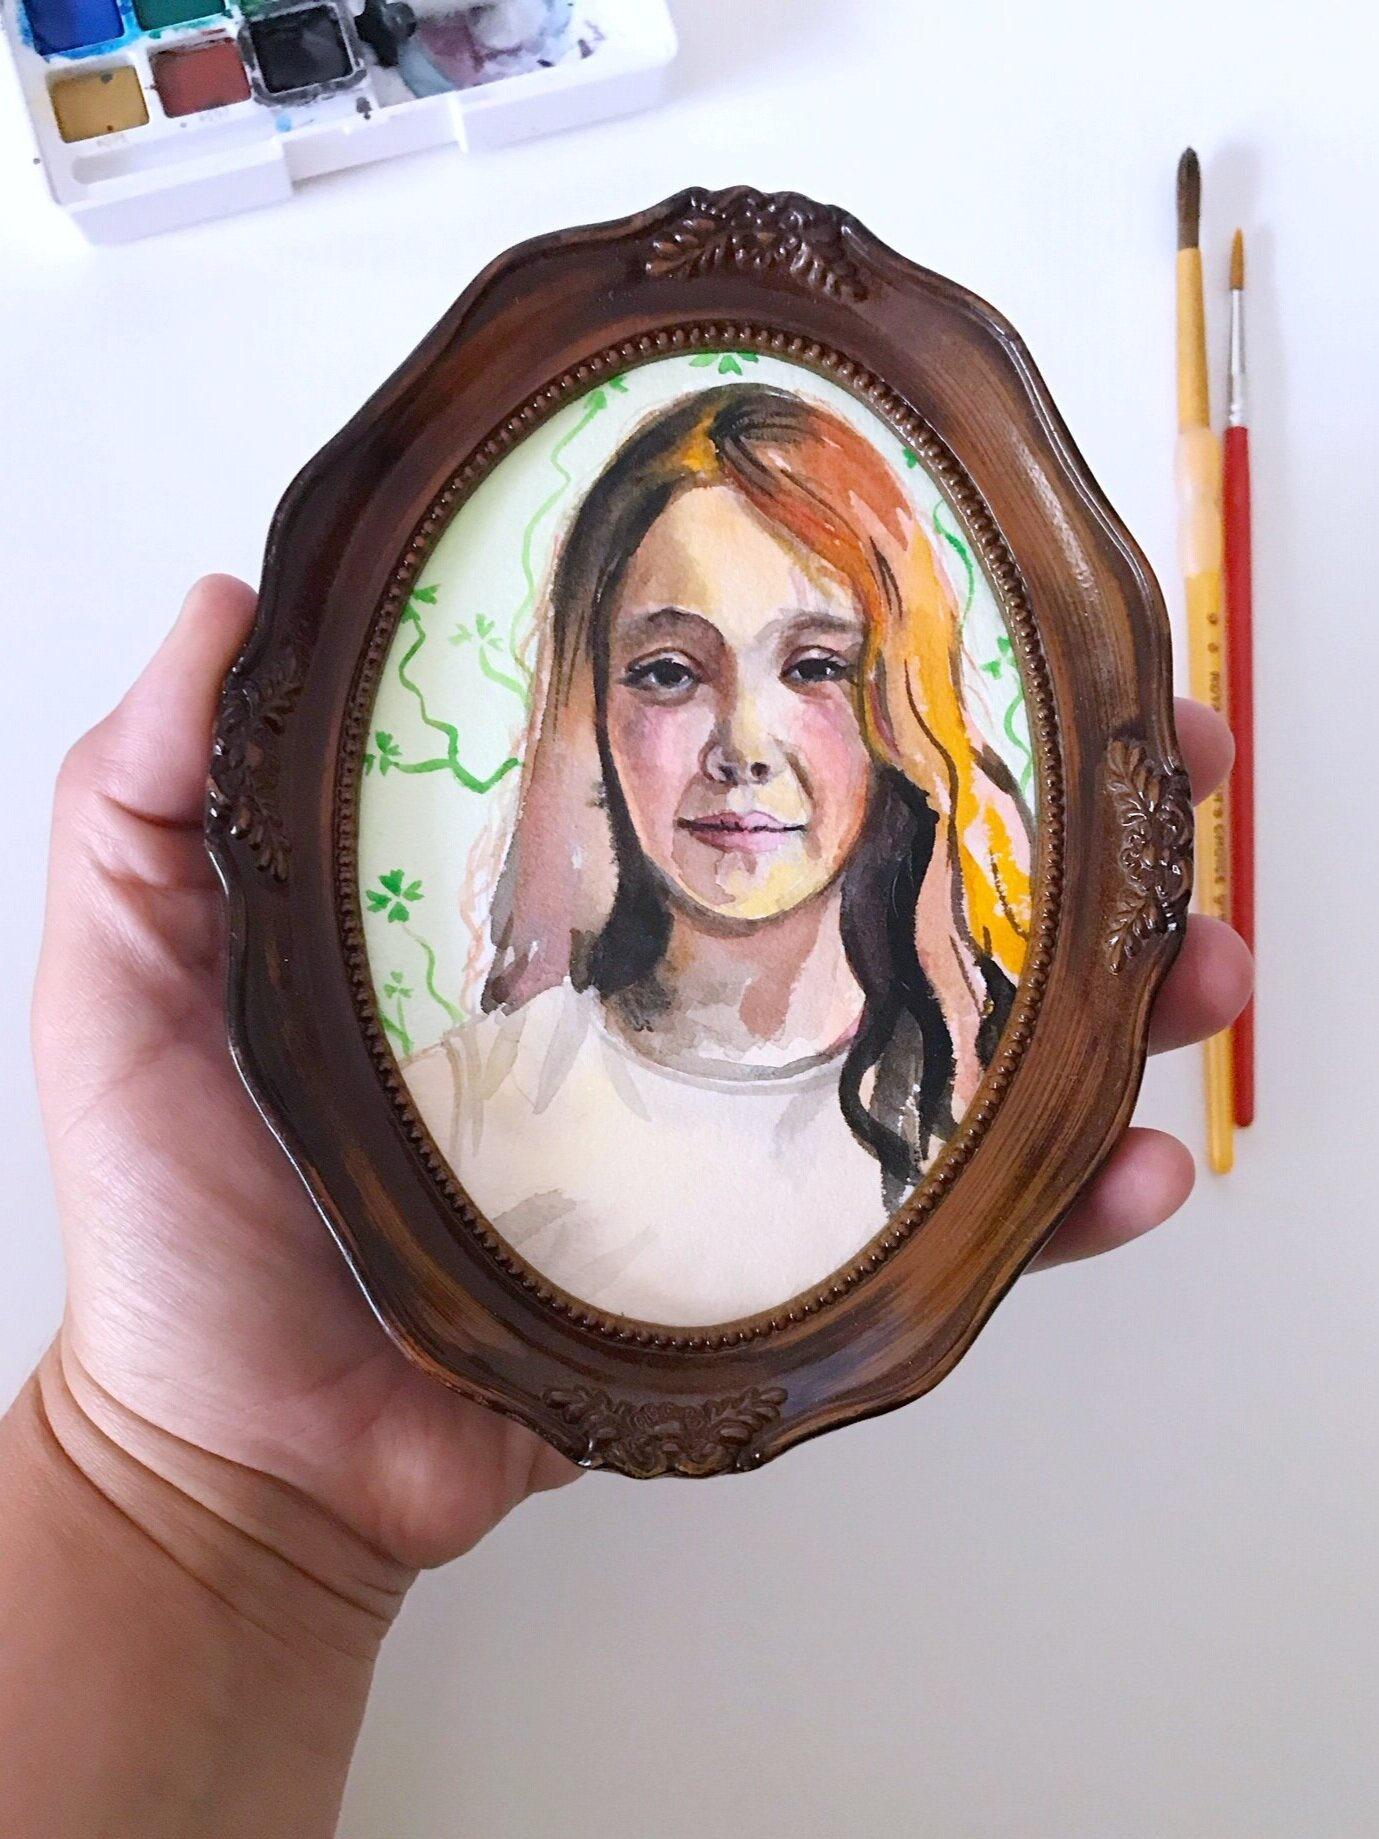 Watercolors give a soft, dreamlike look - *This Portrait was painted in Watercolors